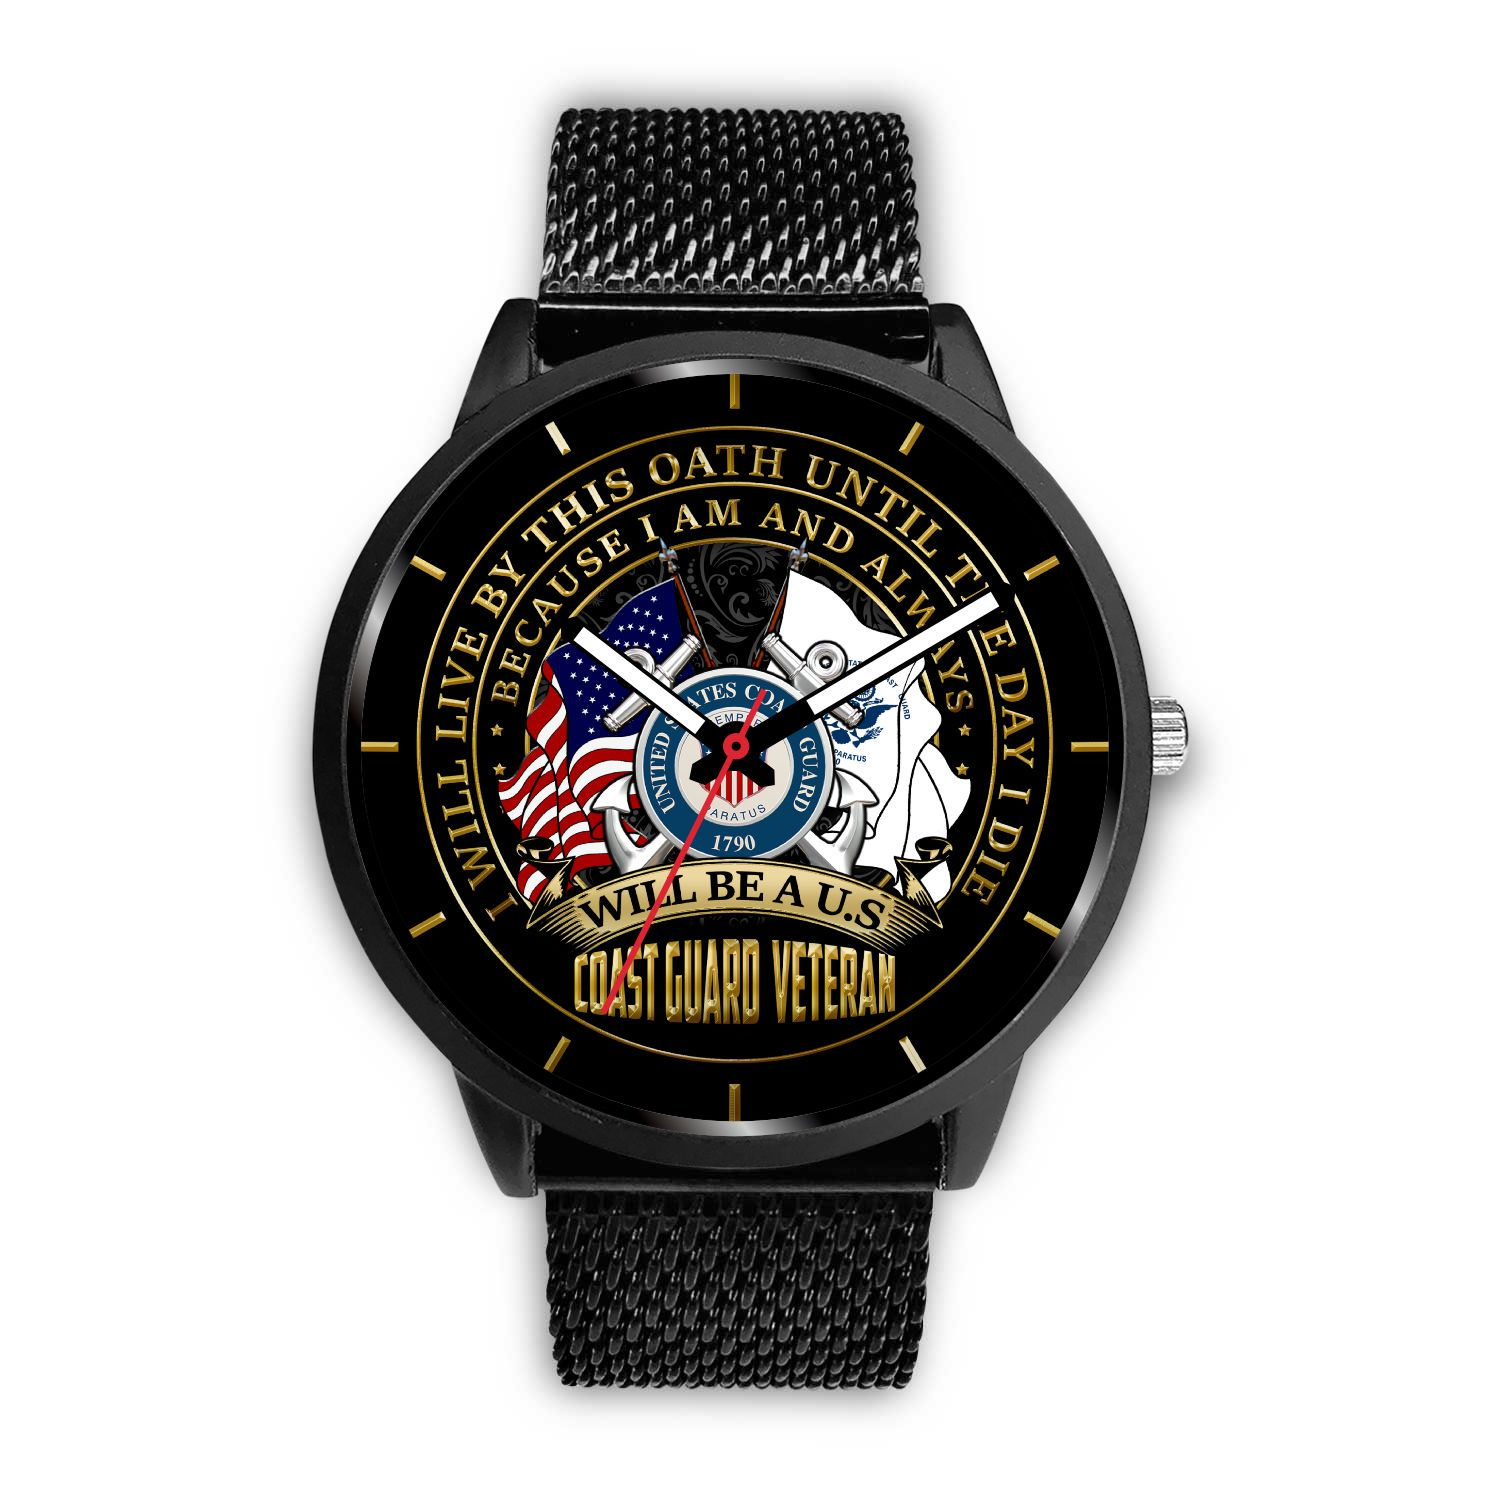 i-will-live_22790a67-1bb7-e98a-10ac-34f11d5b4622 I WILL LIVE BY THIS OATH UNTIL THE DAY I DIE BECAUSE I AM AND ALWAYS WILL BE A U.S COAST GUARD VETERAN WATCH  %tag